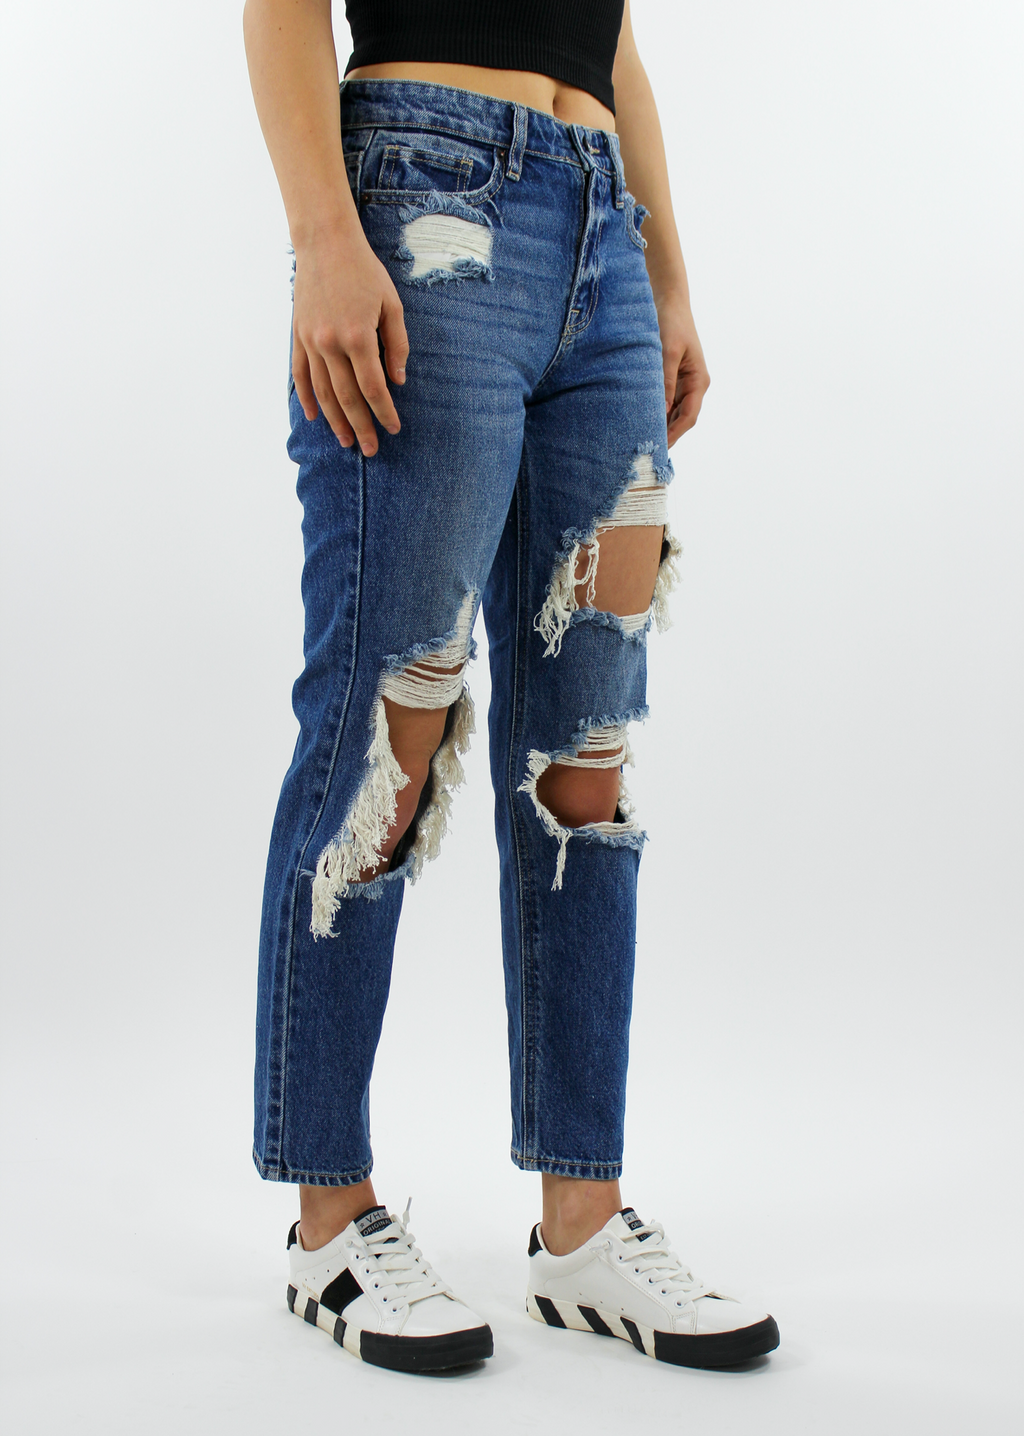 Worth It Boyfriend Jean ★ Dark Denim - Rock N Rags